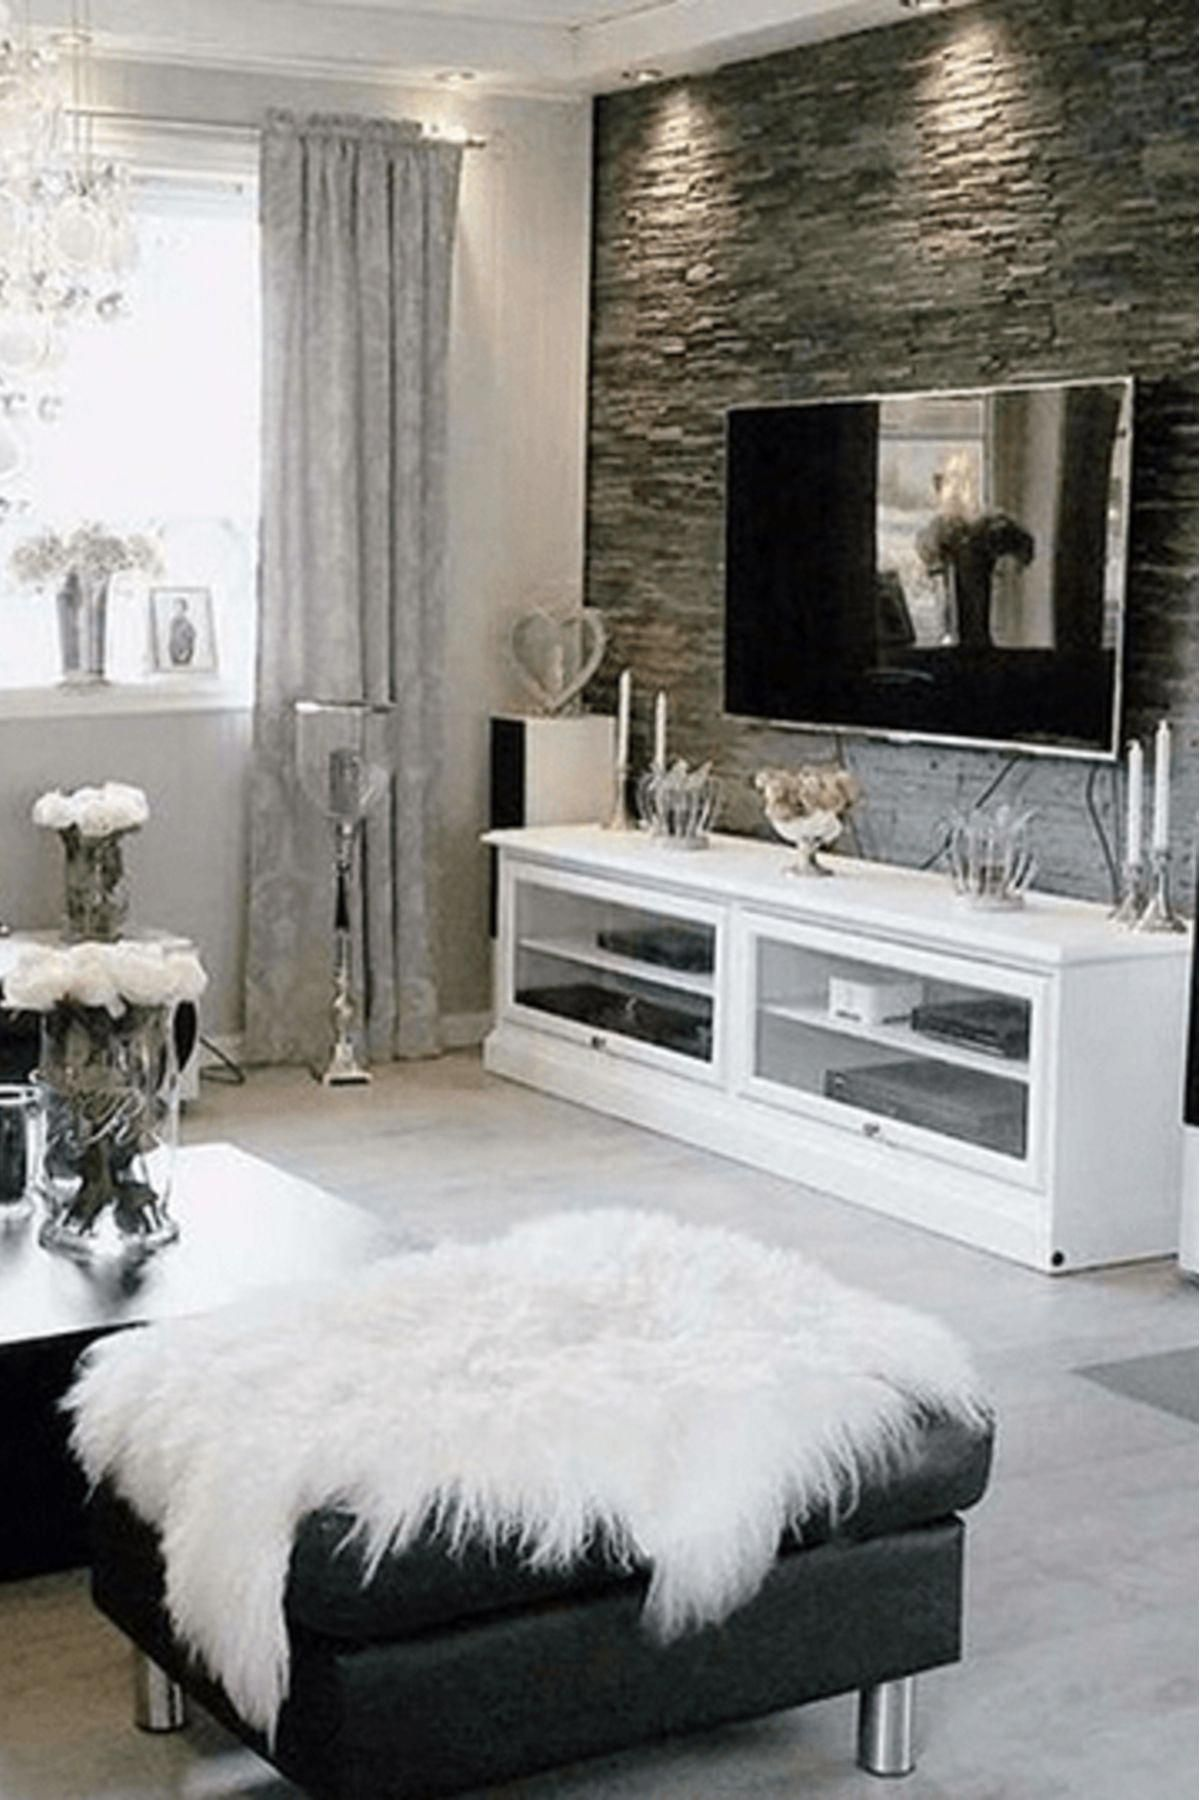 Home Decor Gray Living Room Decor Grey Walls With Mounted Flat Screen Tv White White Furniture Living Room White Living Room Decor Grey Walls Living Room